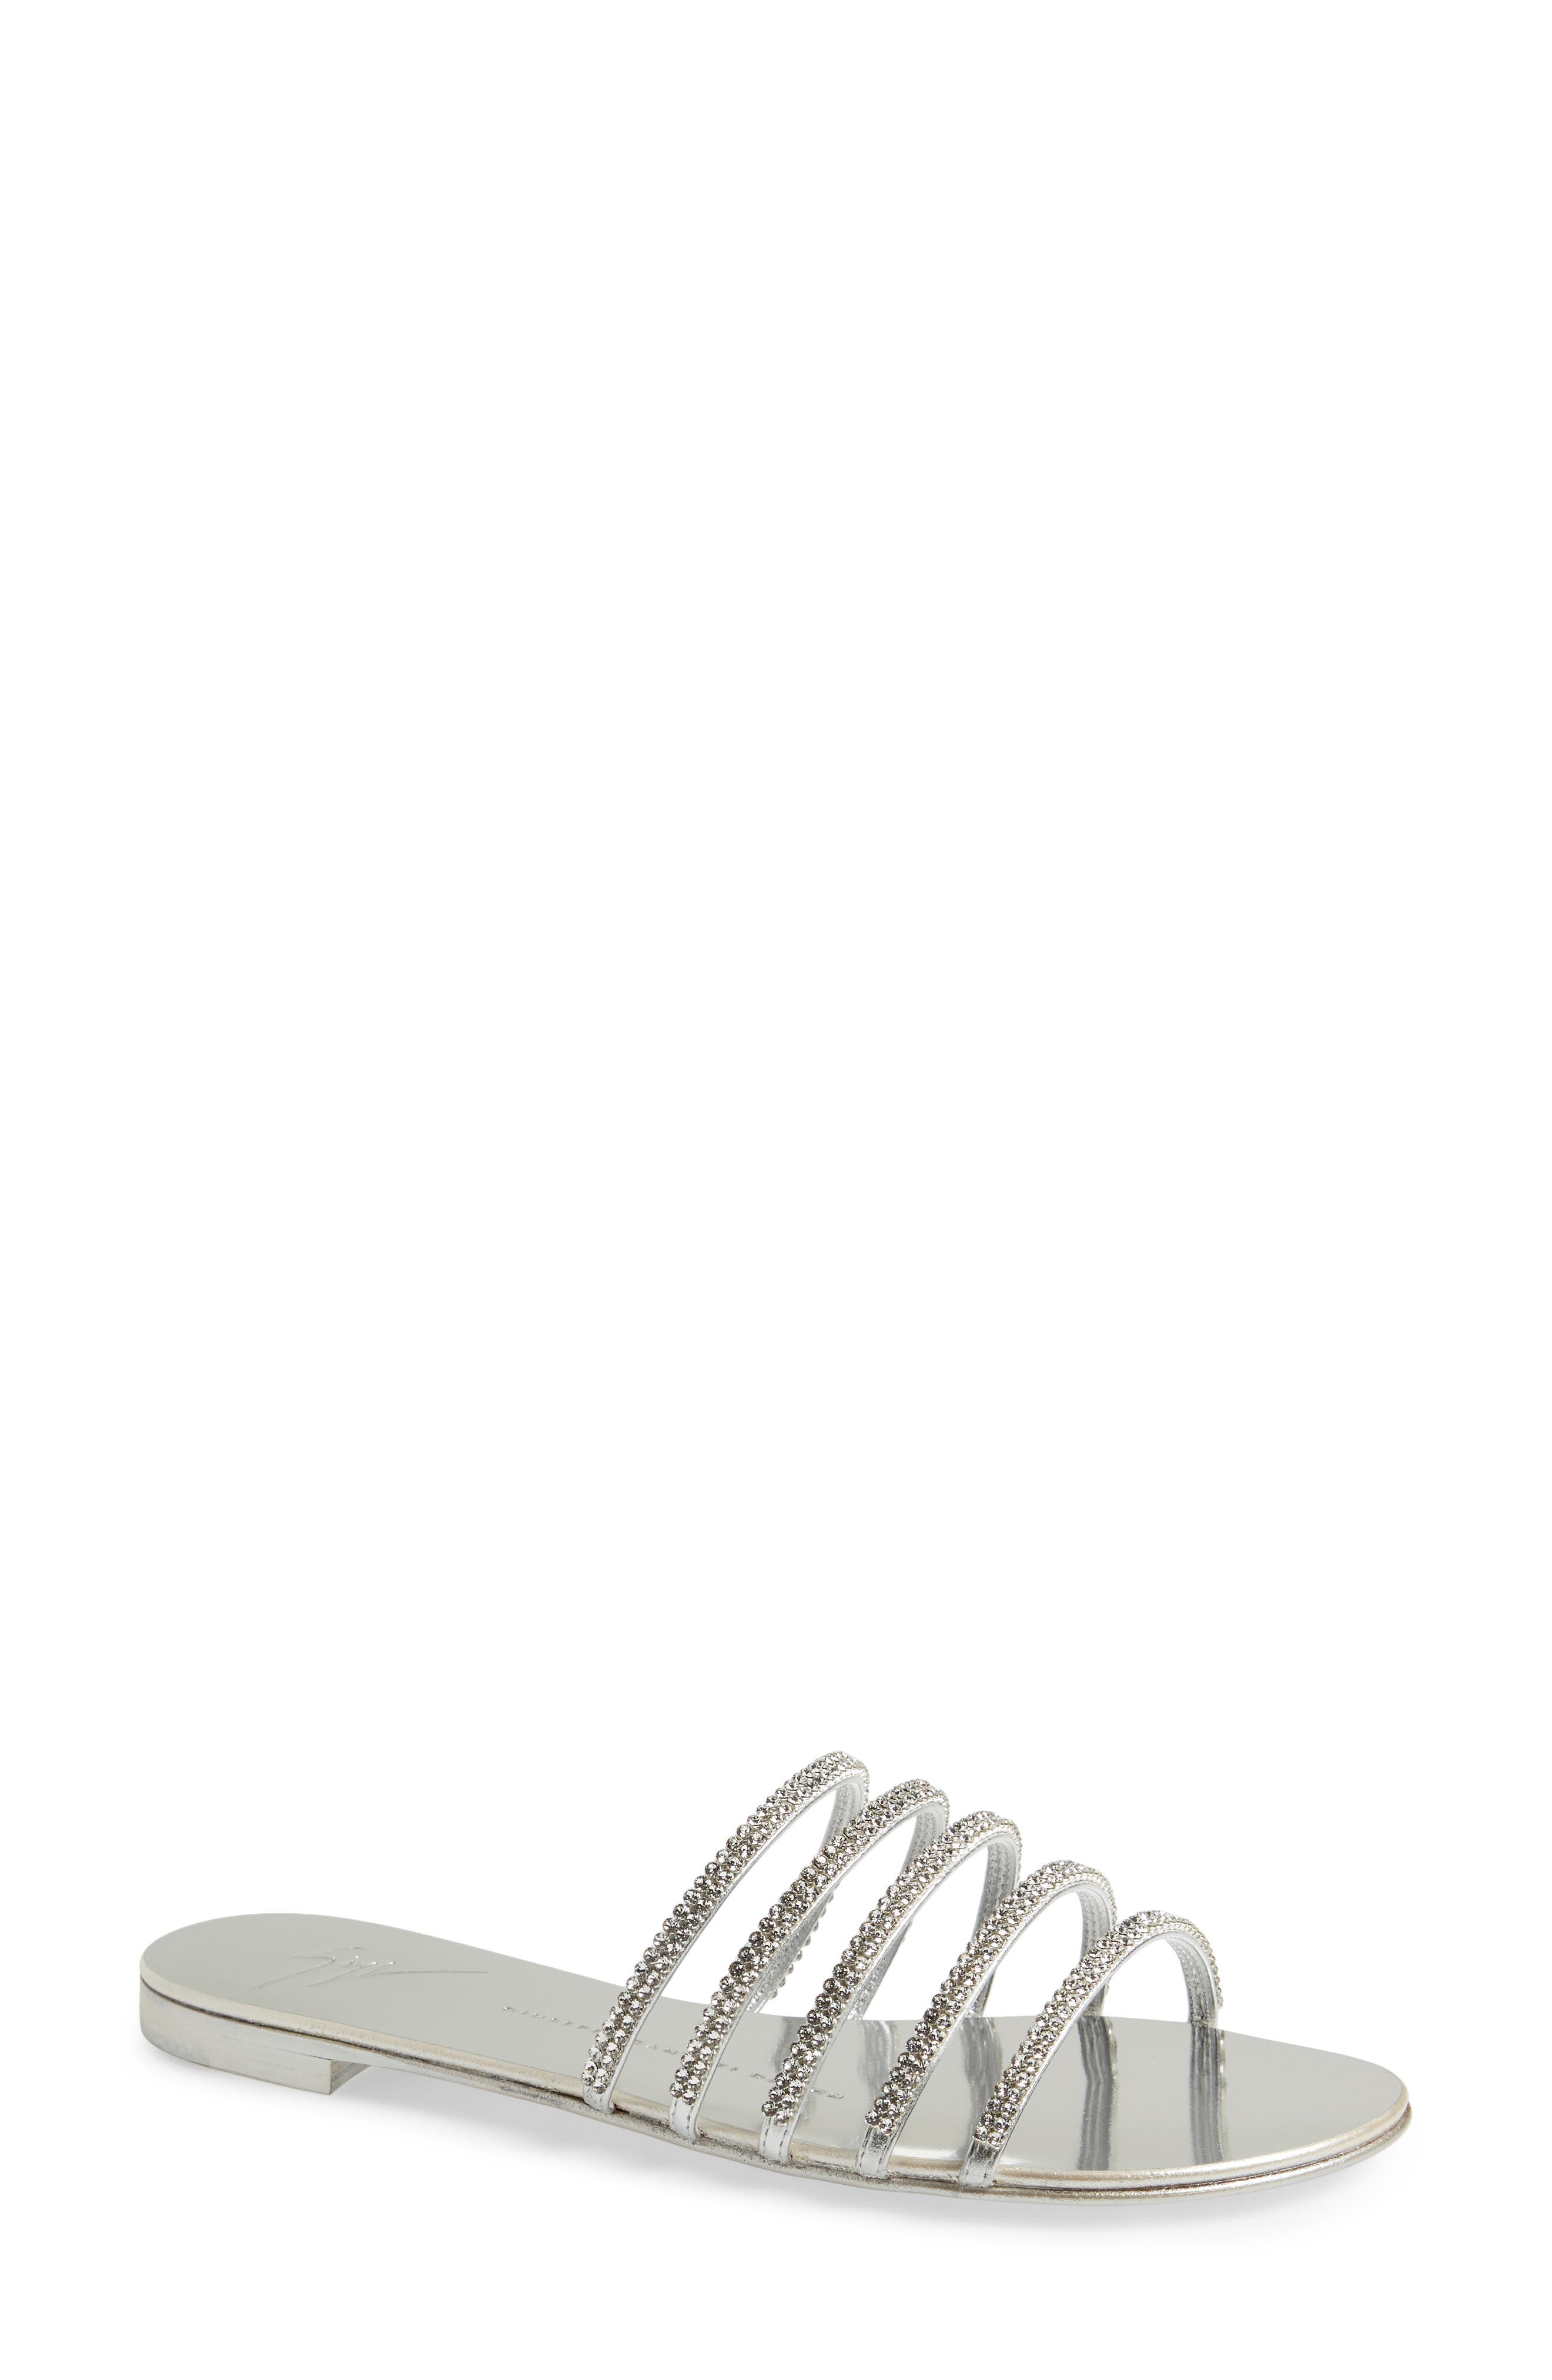 Alternate Image 1 Selected - Giuseppe Zanotti Nuvoroll Crystal Embellished Slide Sandal (Women)